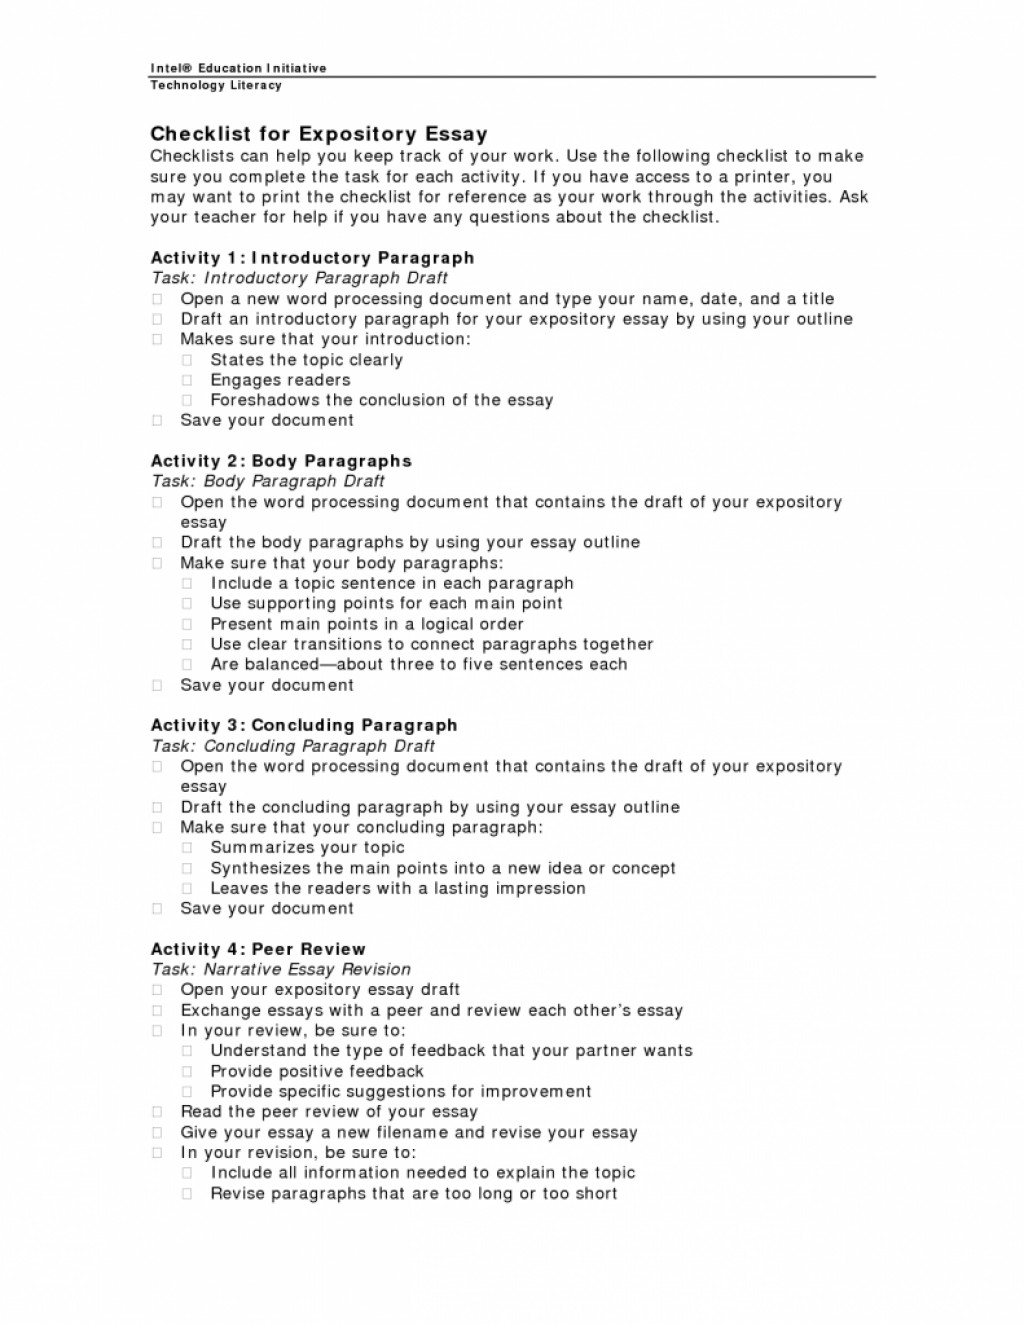 023 Expository Essay Checklist 791x1024 What Is An Magnificent Gcu Middle School Powerpoint Large